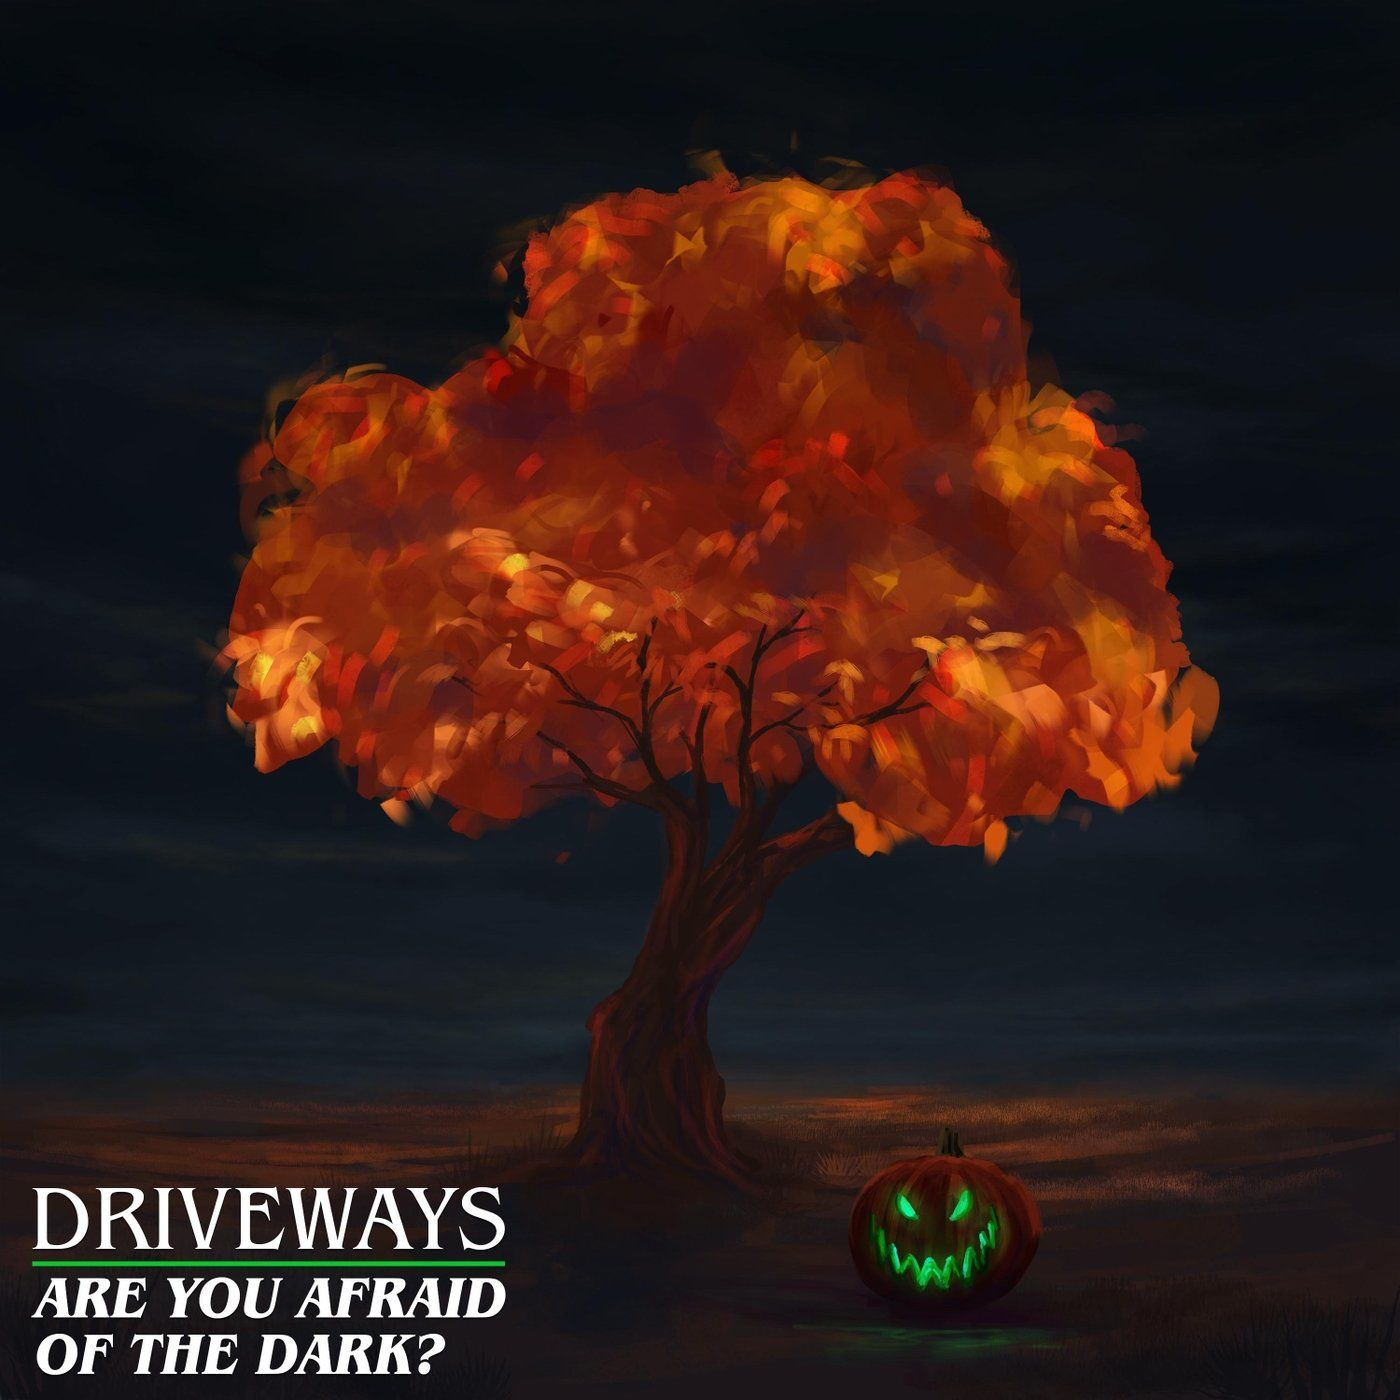 Driveways - Are You Afraid of the Dark? [single] (2020)